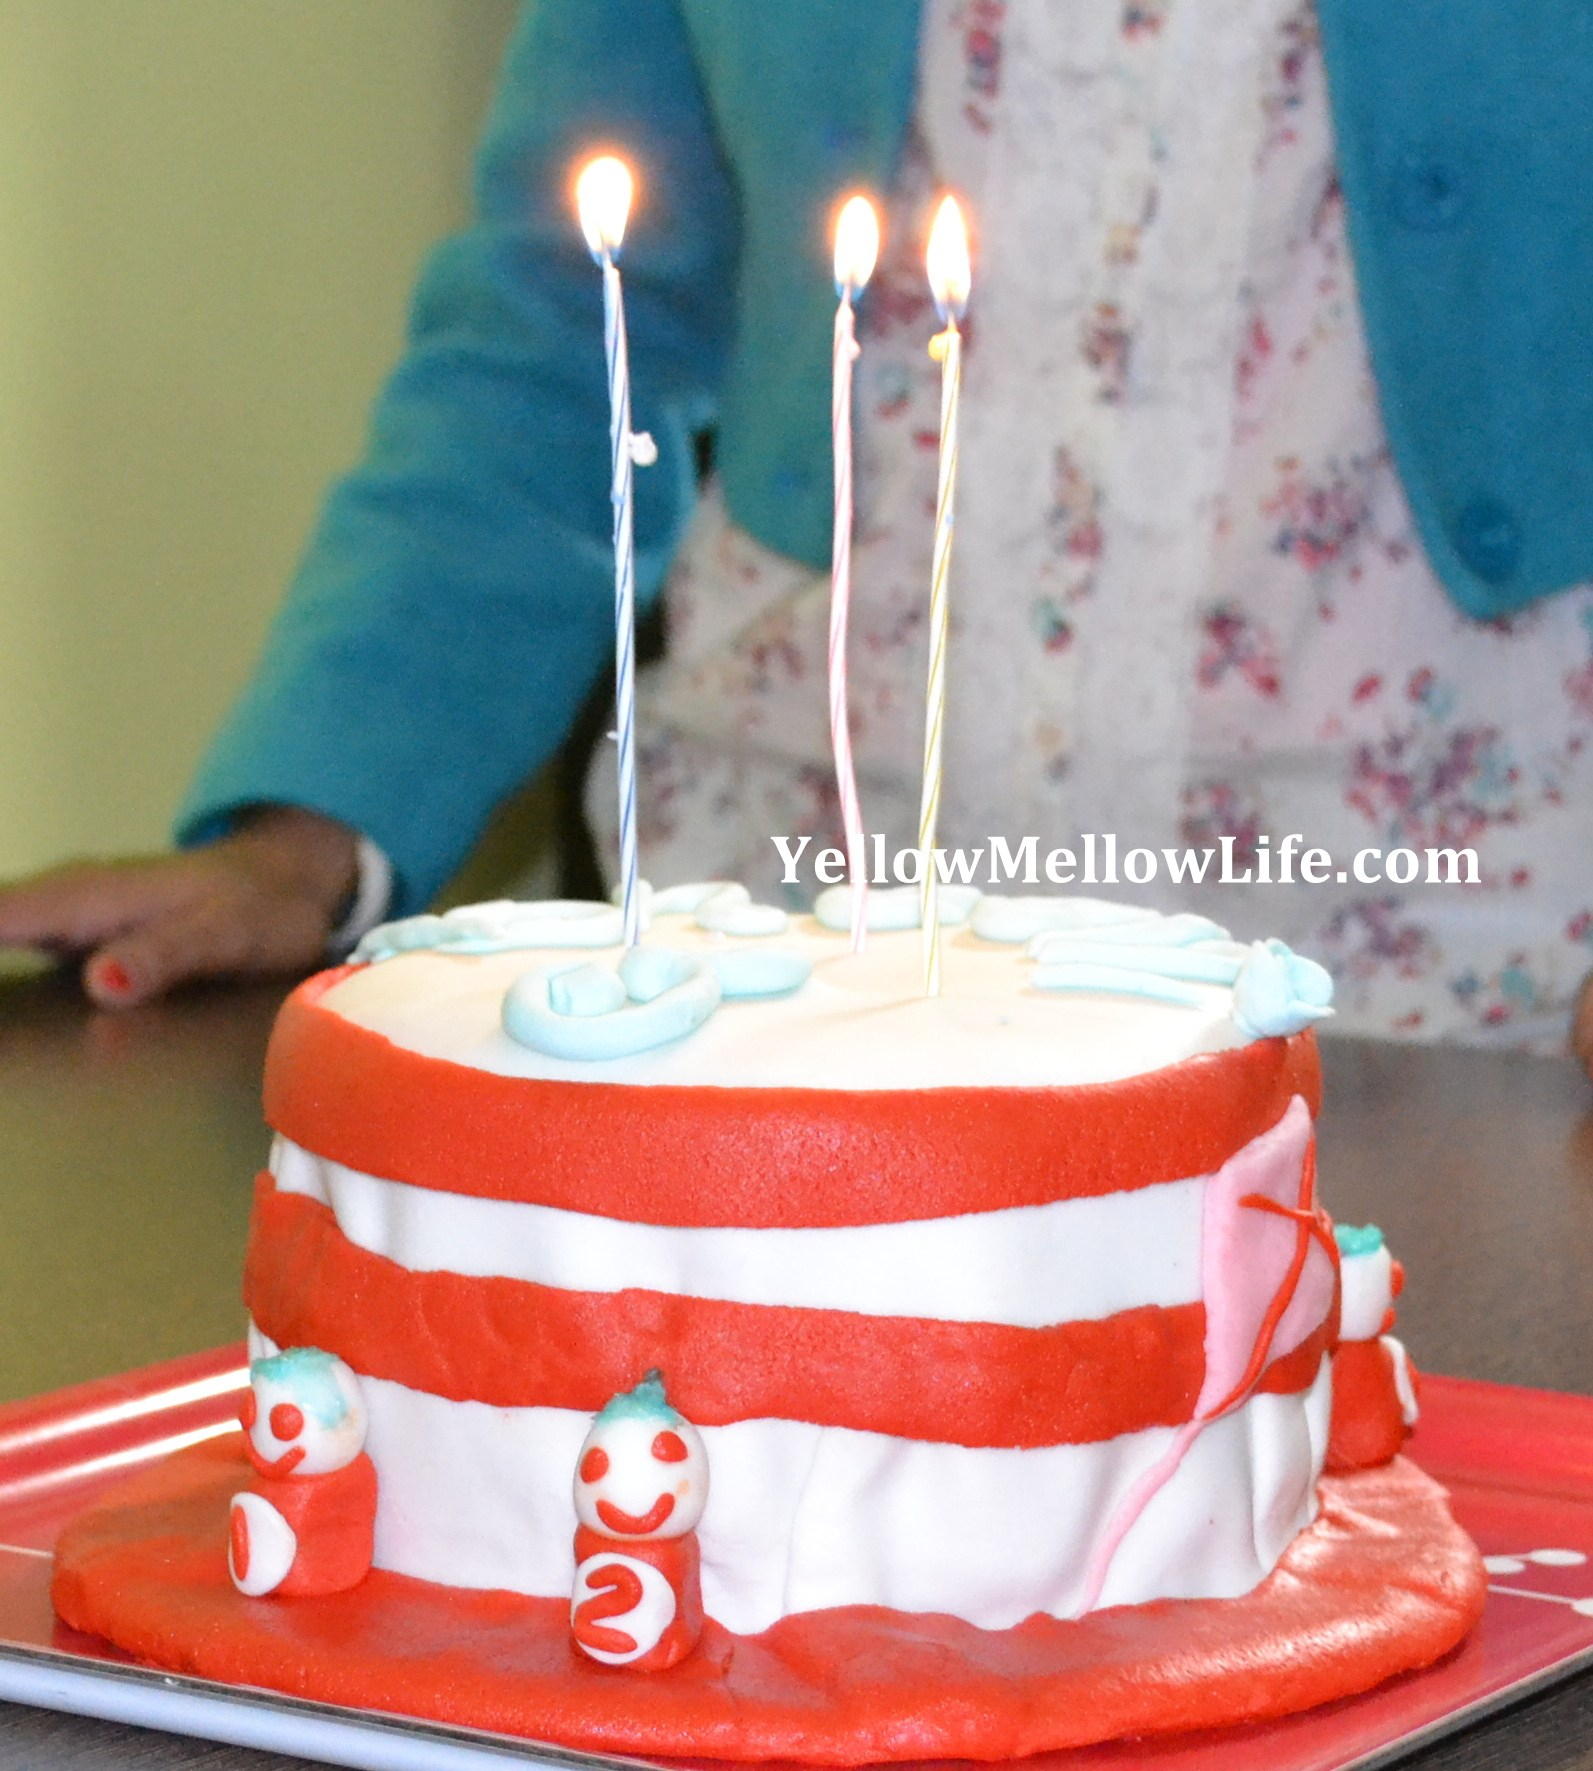 Cat In The Hat Birthday Cake The Cat In The Hat Birthday Cake Yellow Mellow Life